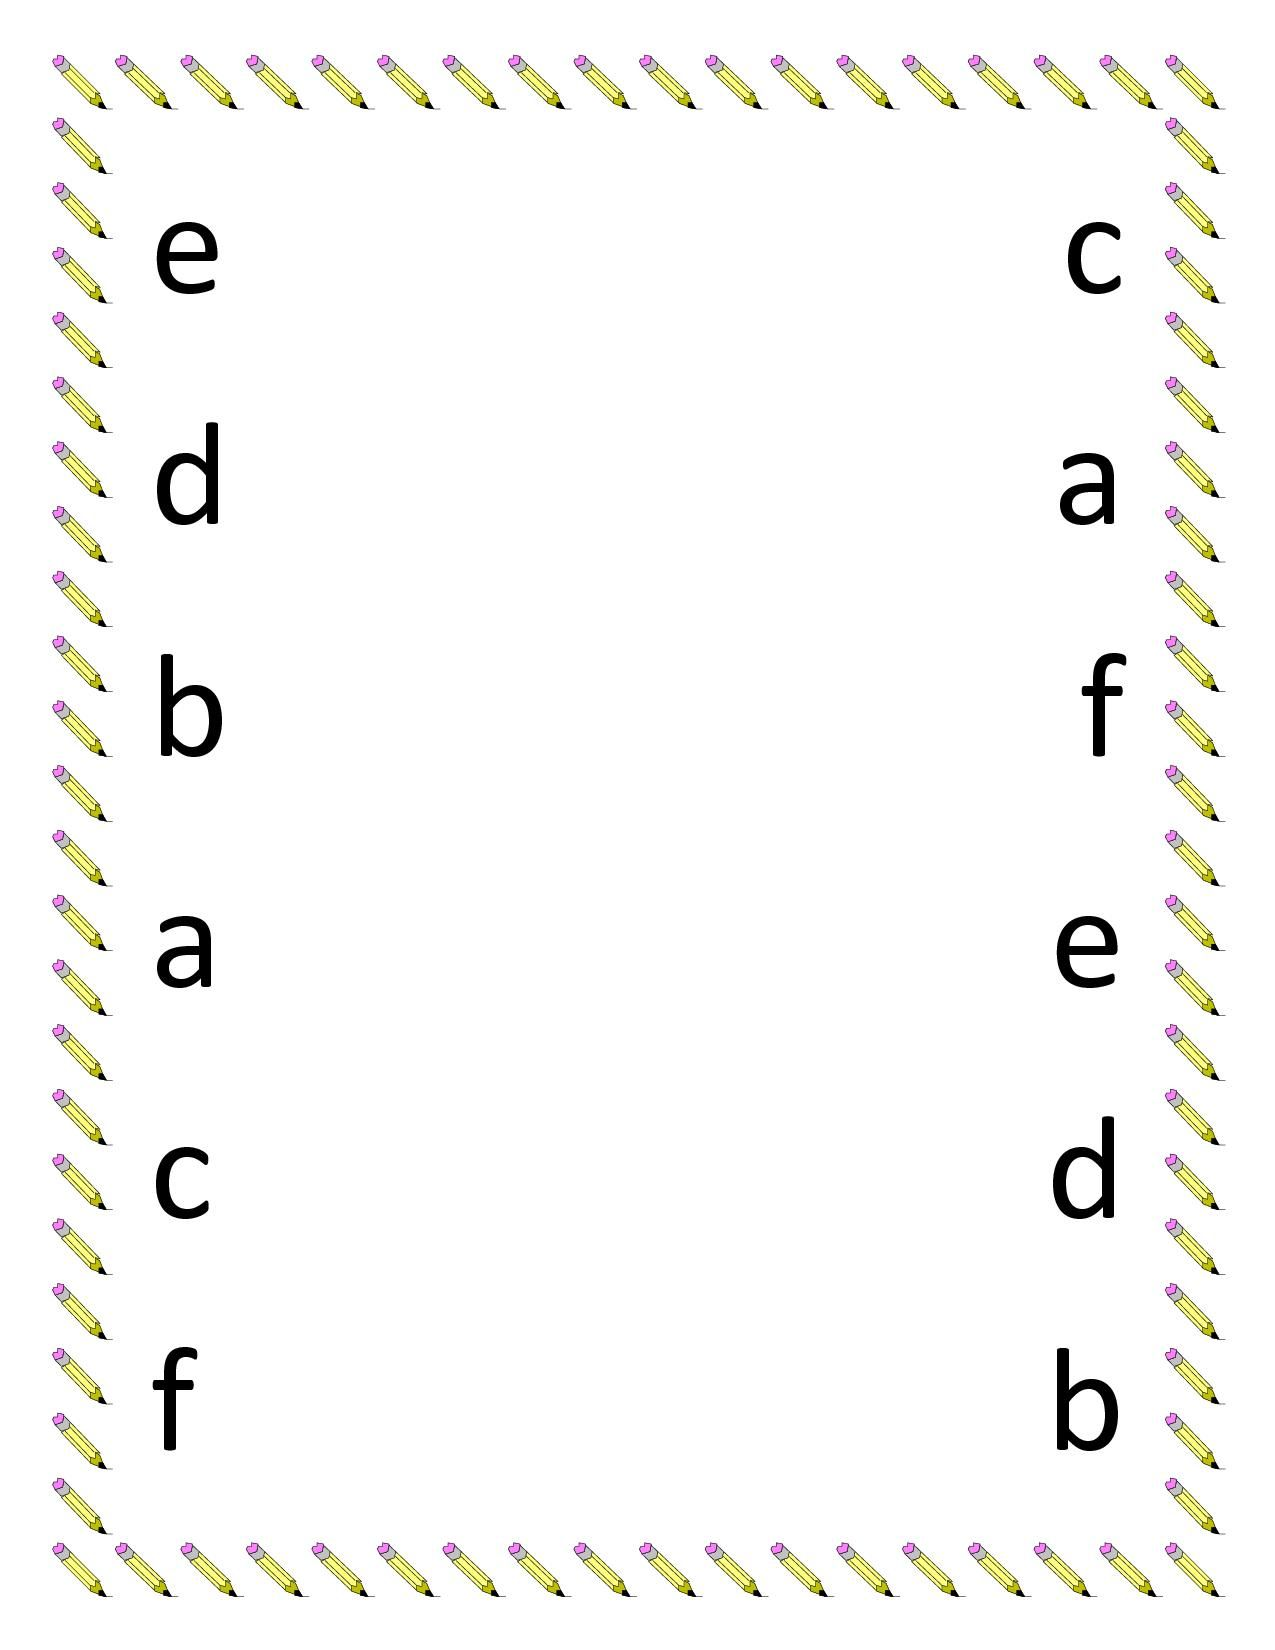 Lowercase Abc Practice Sheets In